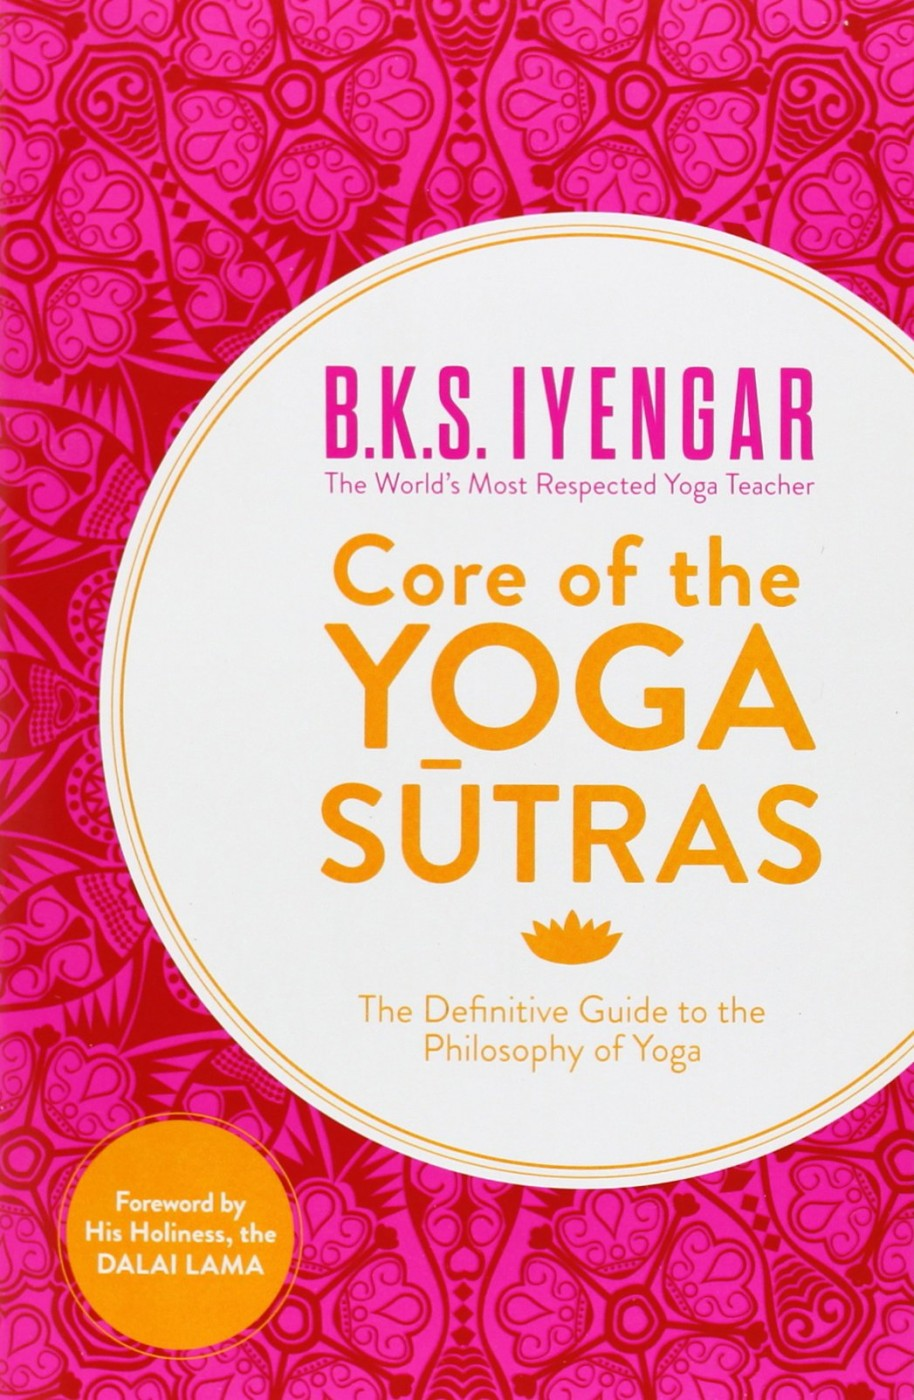 B. K. S. Iyengar Core of the Yoga Sutras: The Definitive Guide to the Philosophy of Yoga